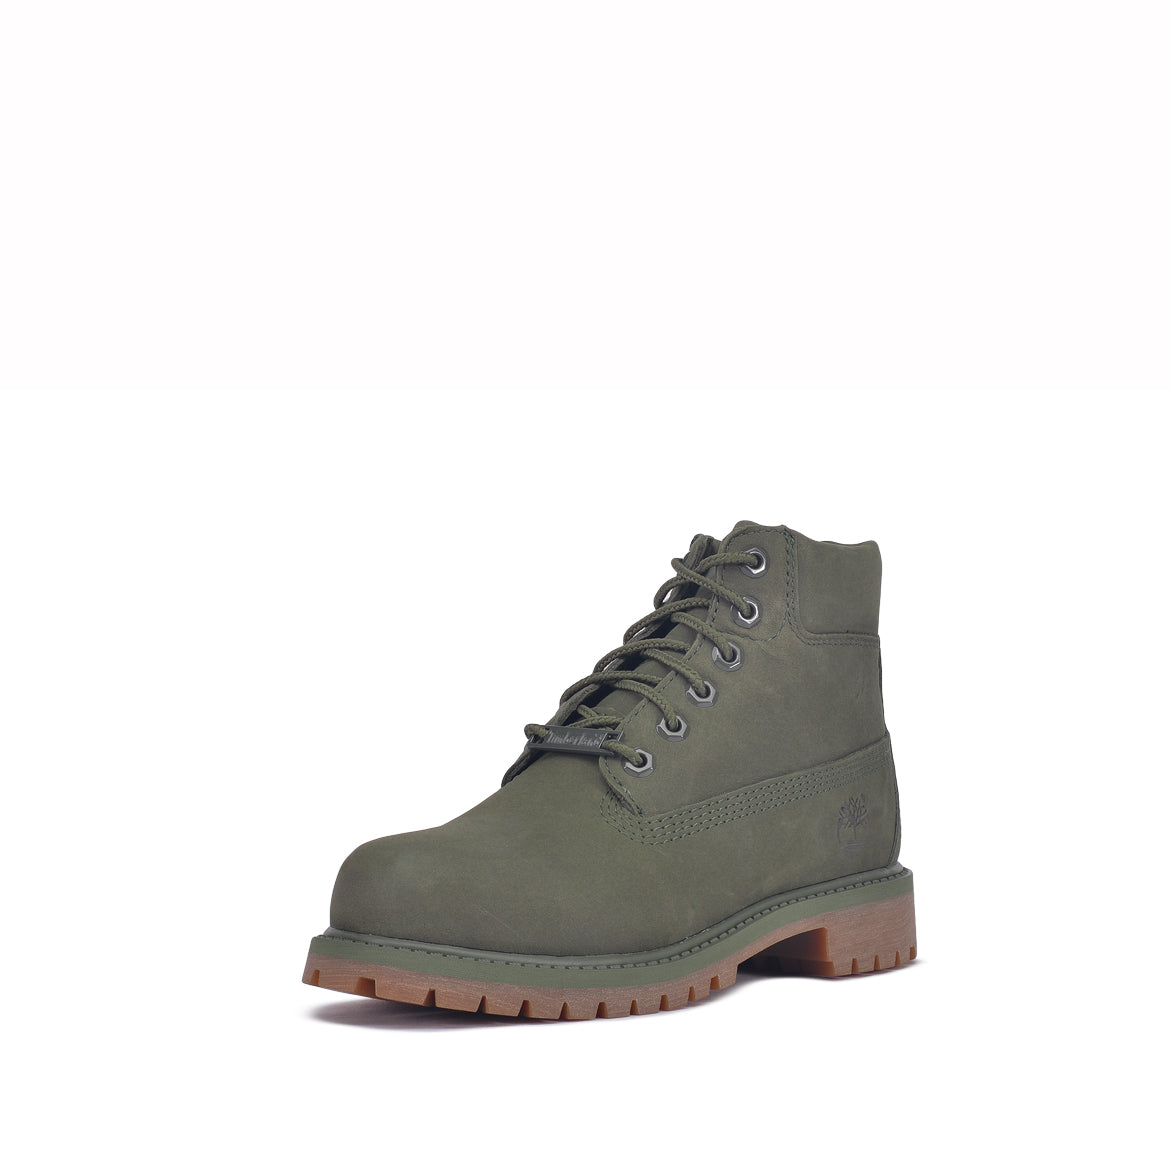 "6"" PREMIUM WATERPROOF BOOT (YOUTH) - GREEN"